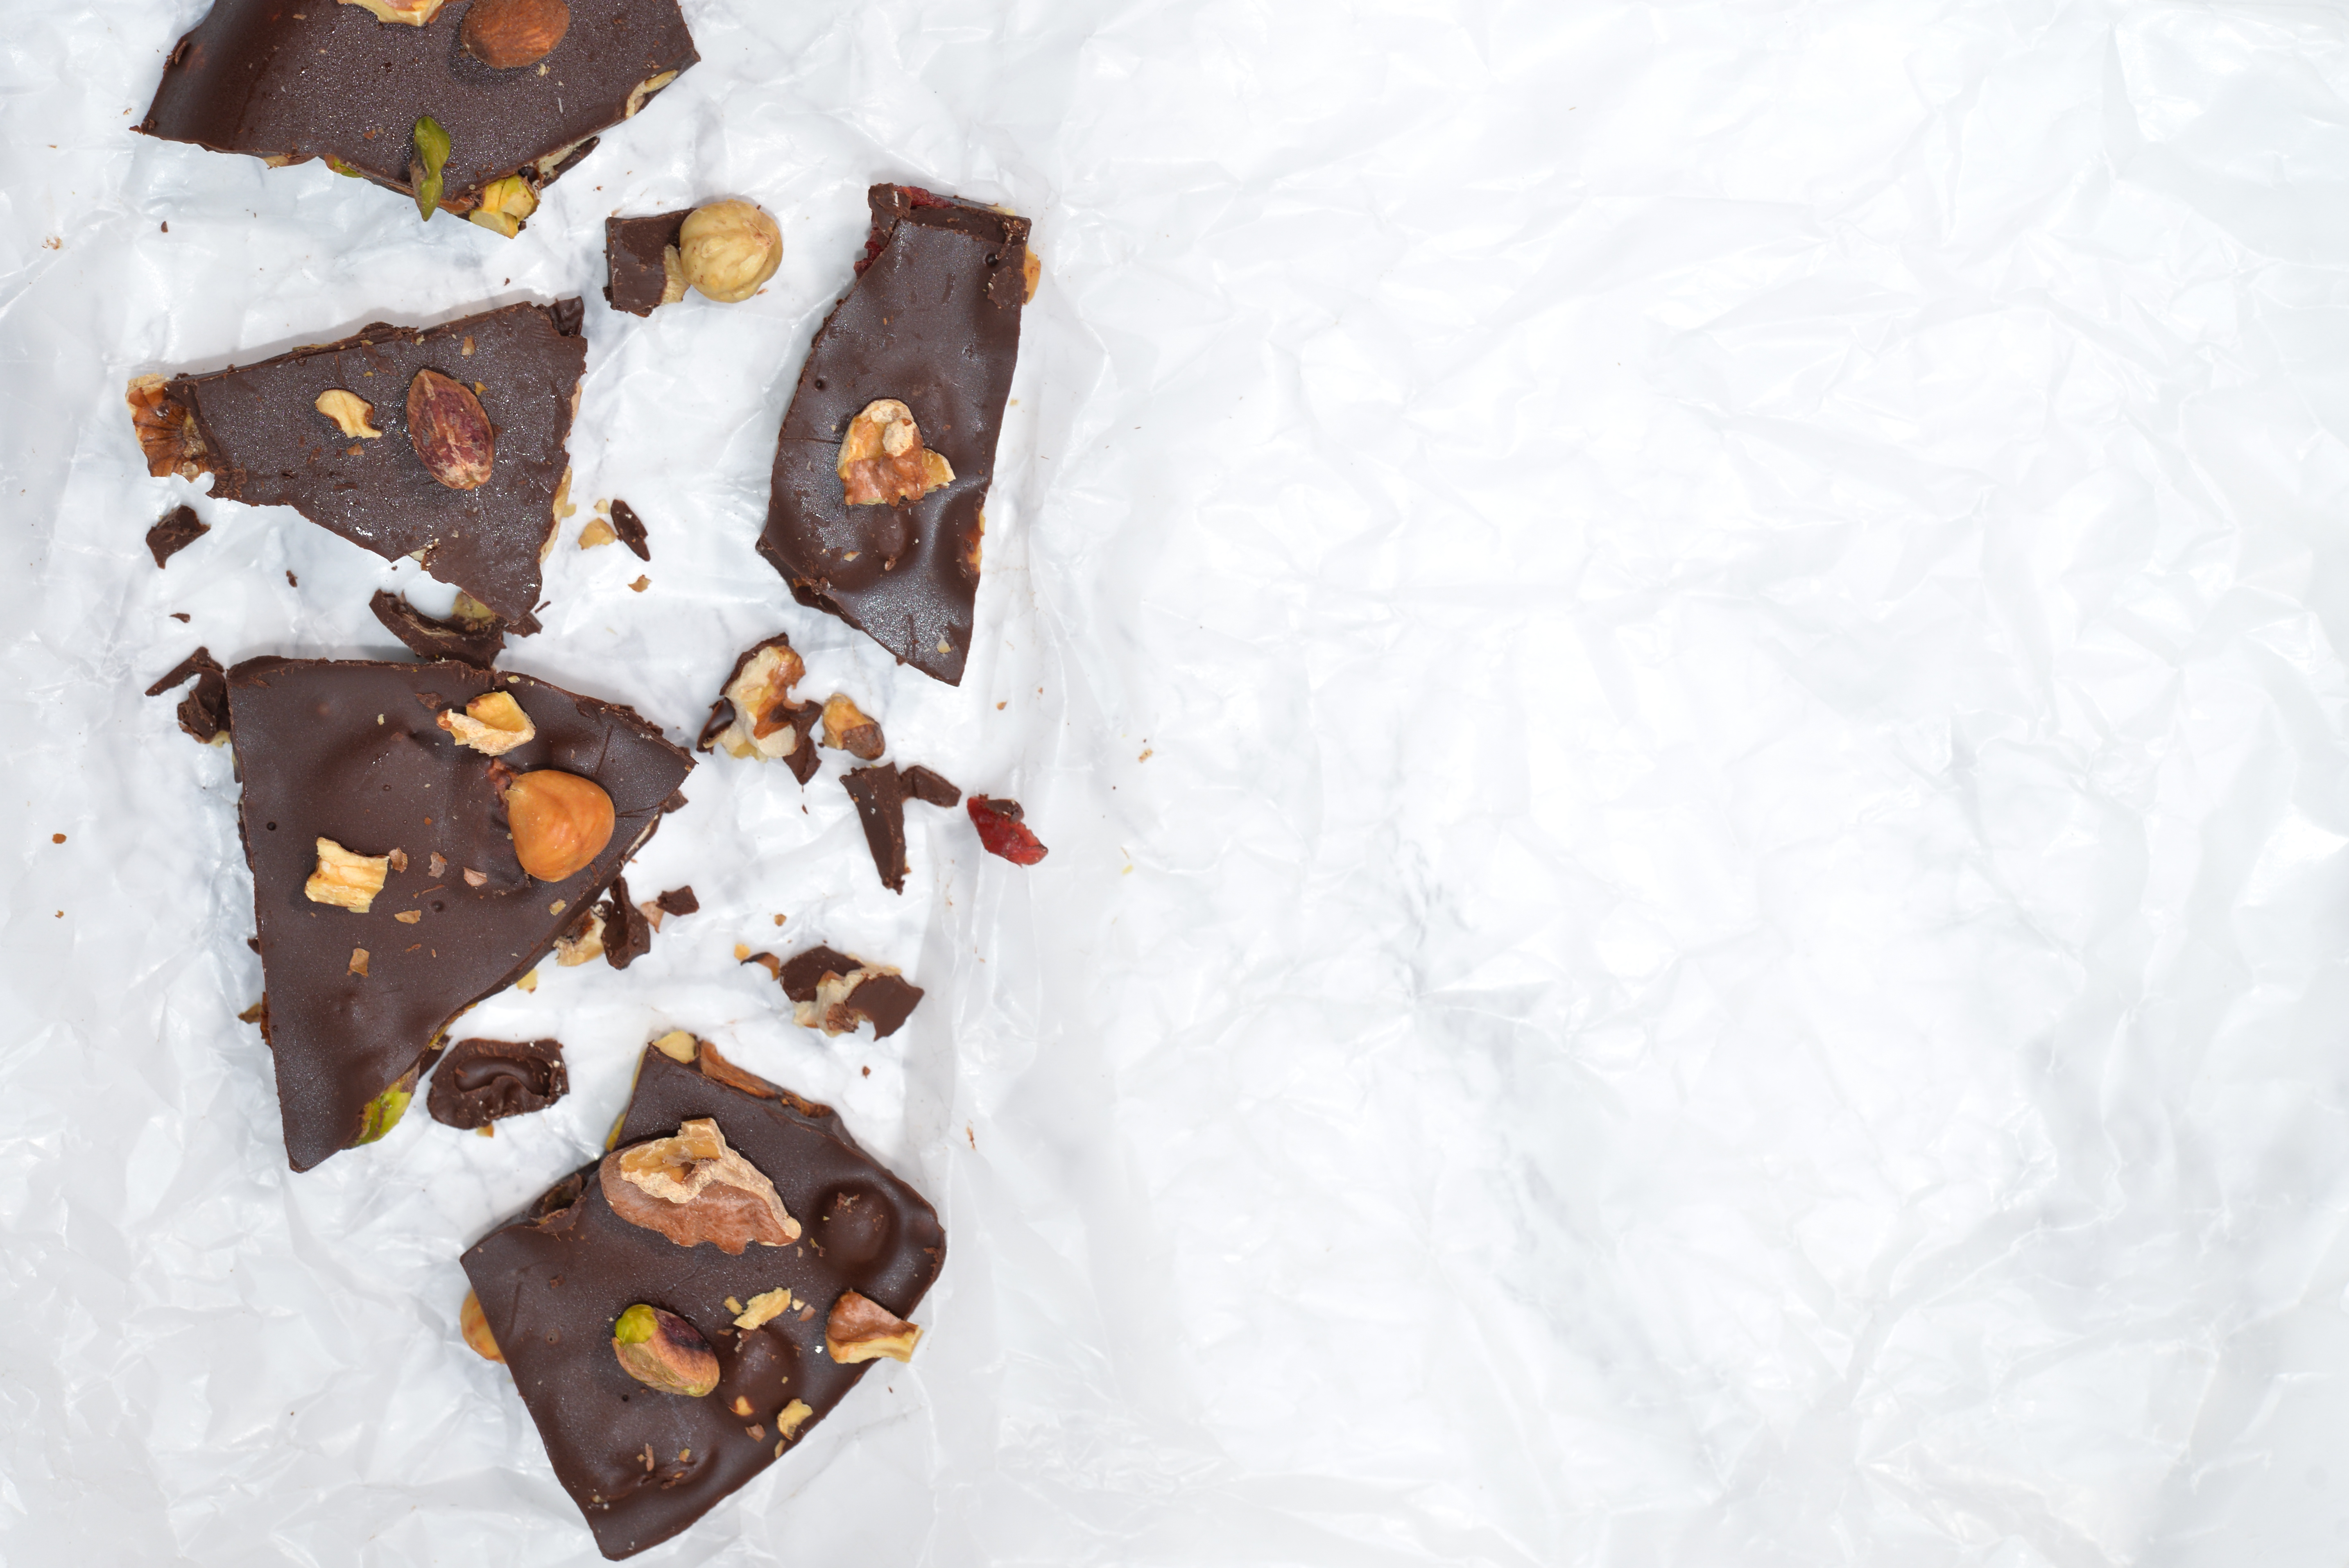 Dark chocolate bark with mixed nuts on wax paper